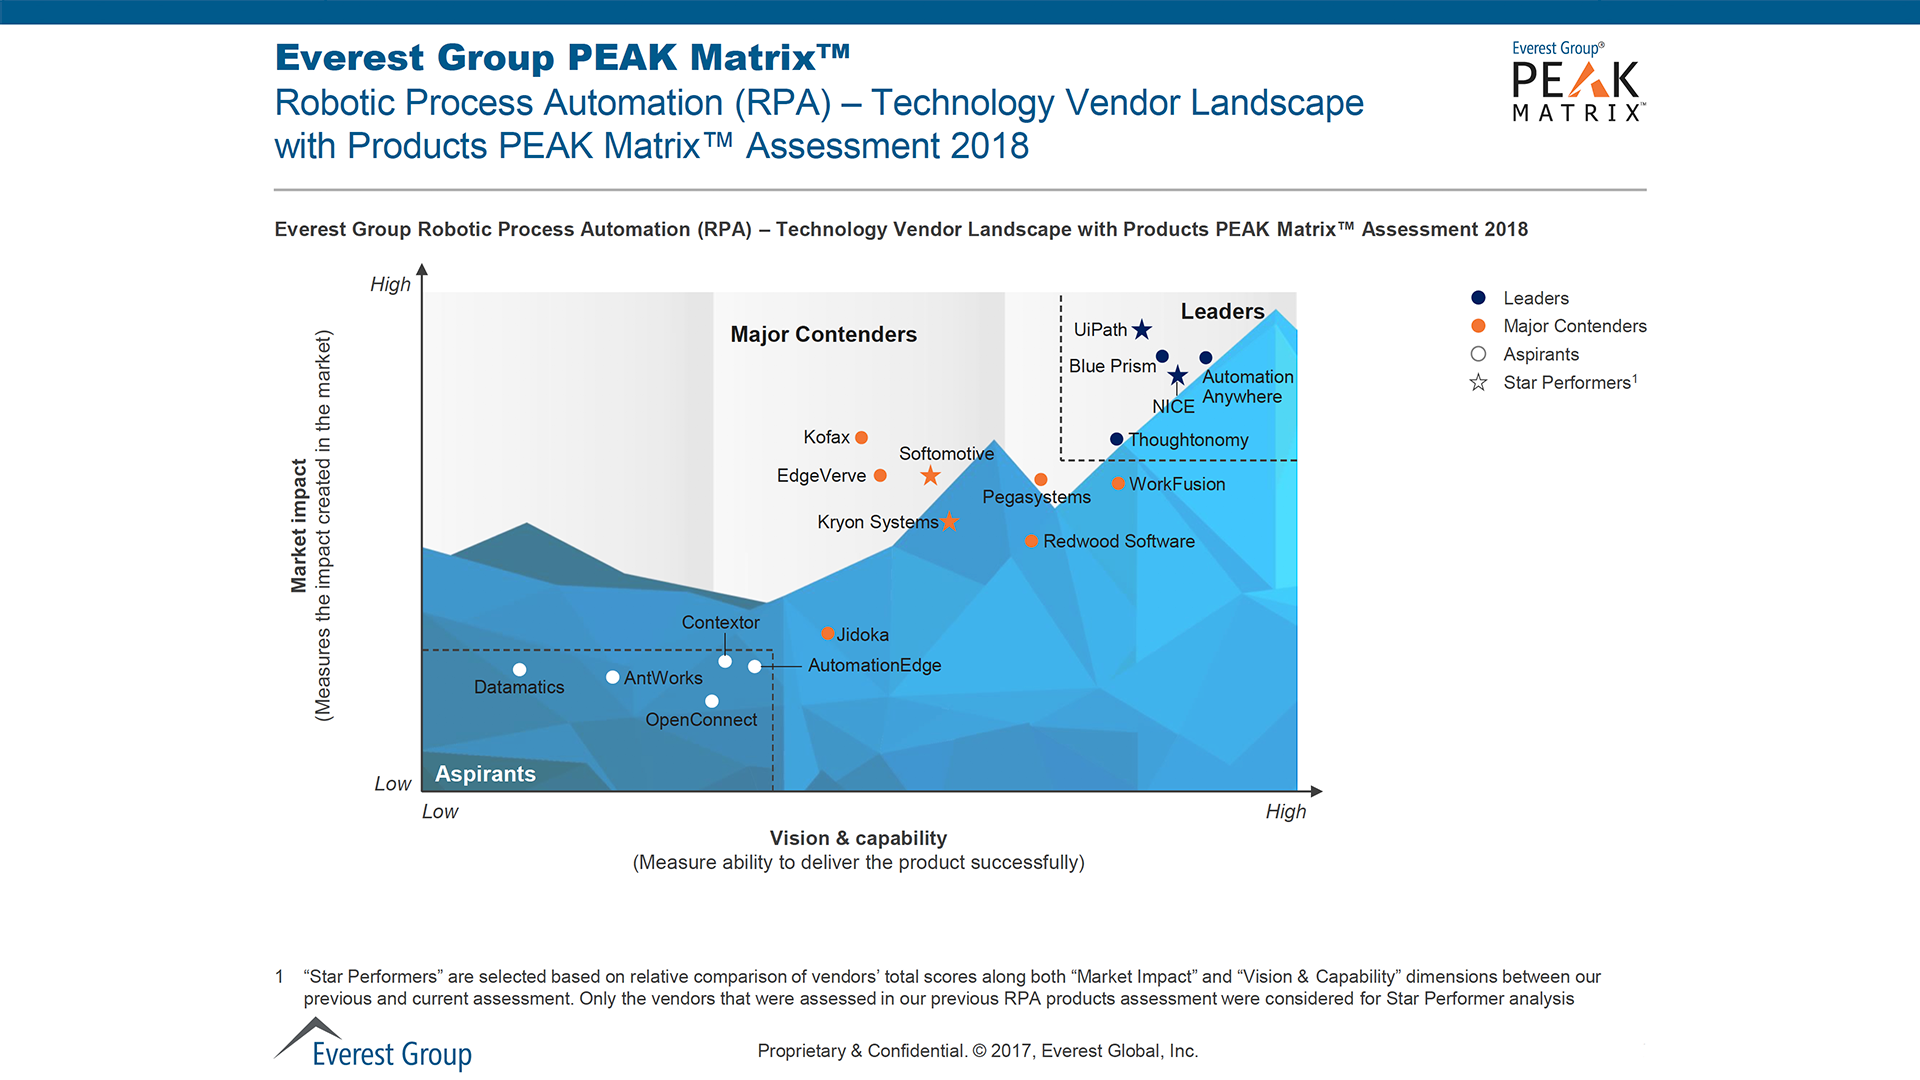 Everest Group 2018 RPA PEAK Matrix: UiPath Named Leader and